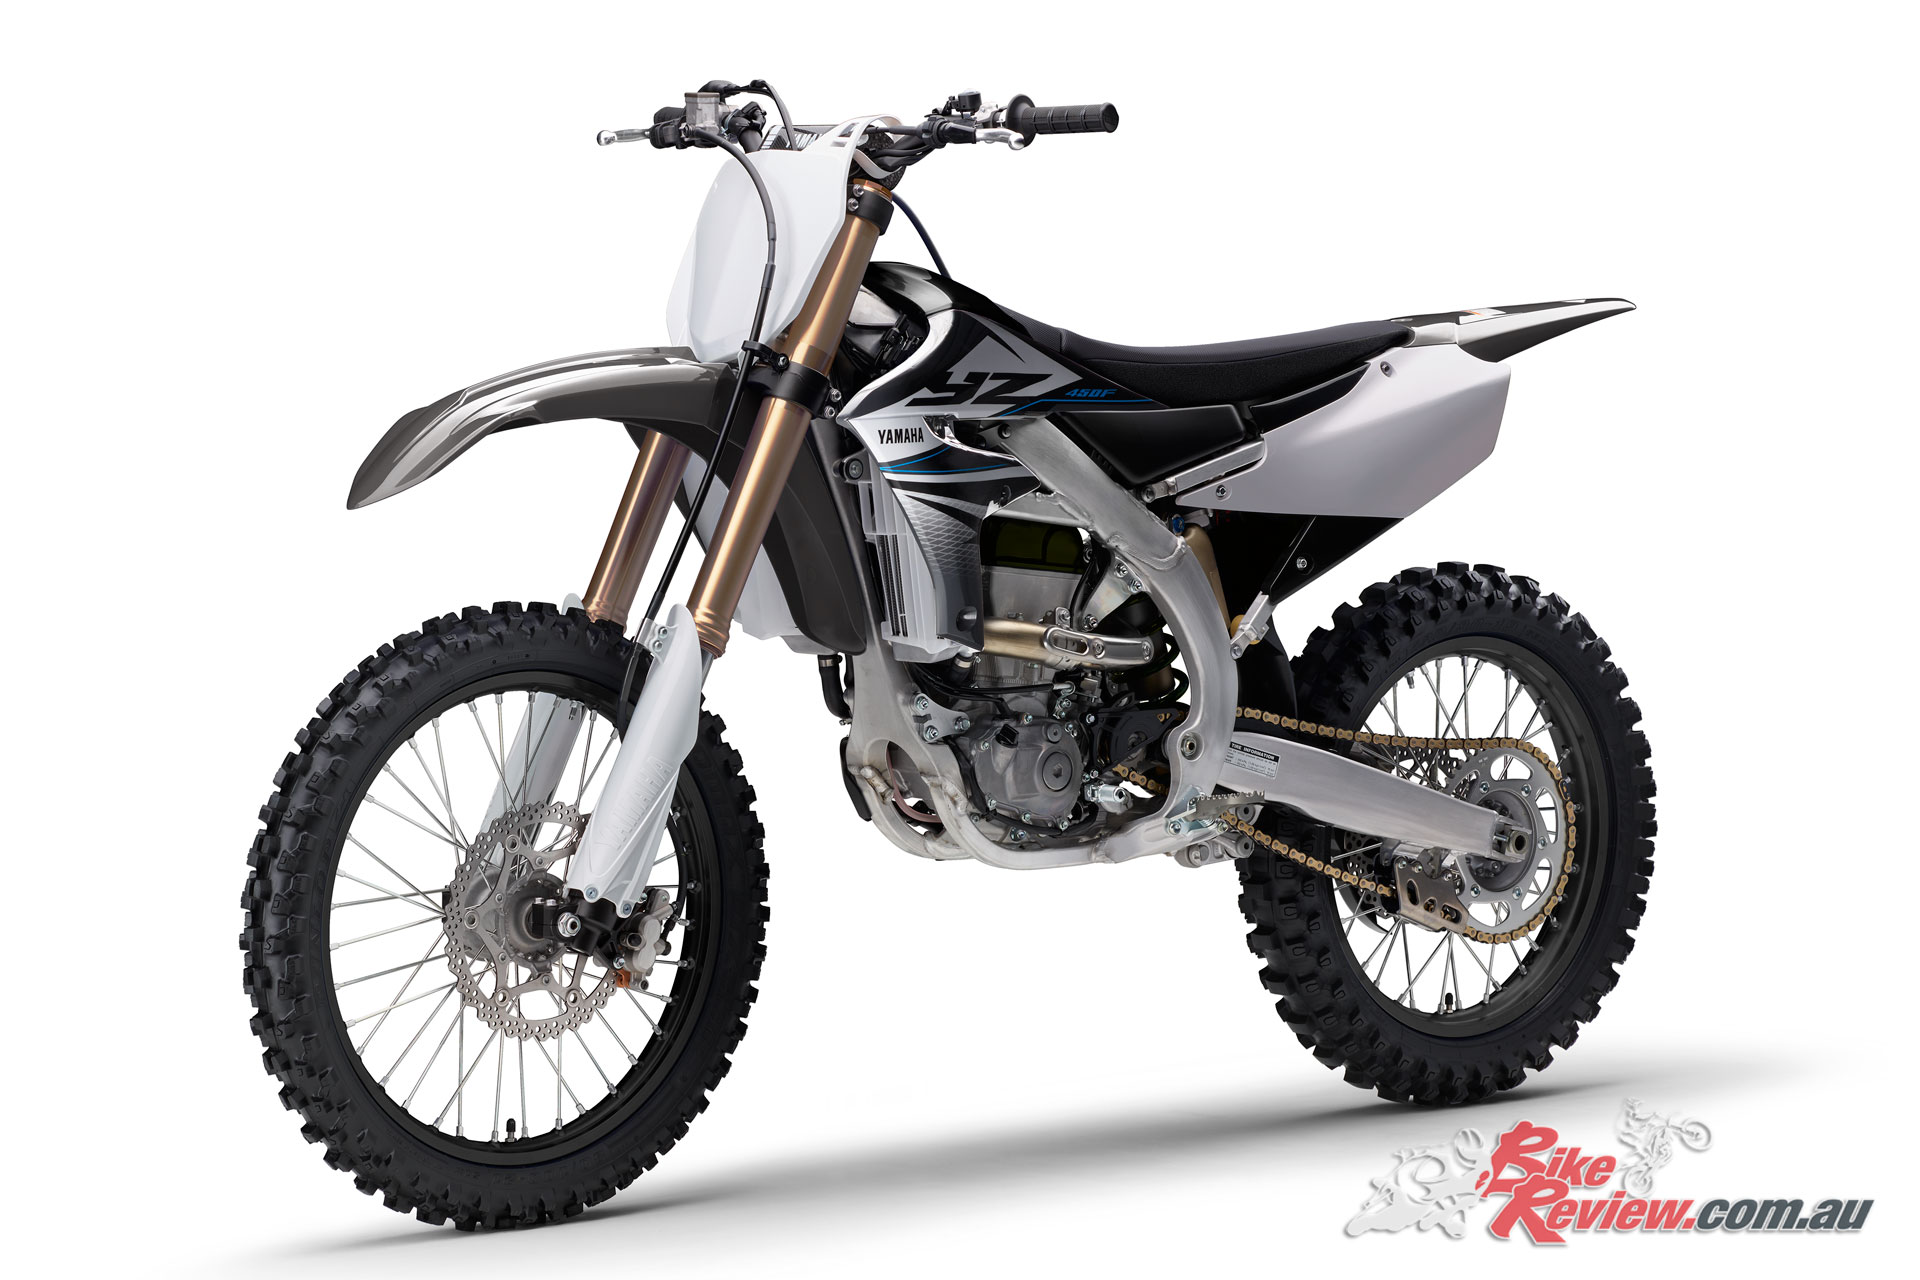 The 2020 Yamaha YZ450F also features updated brakes